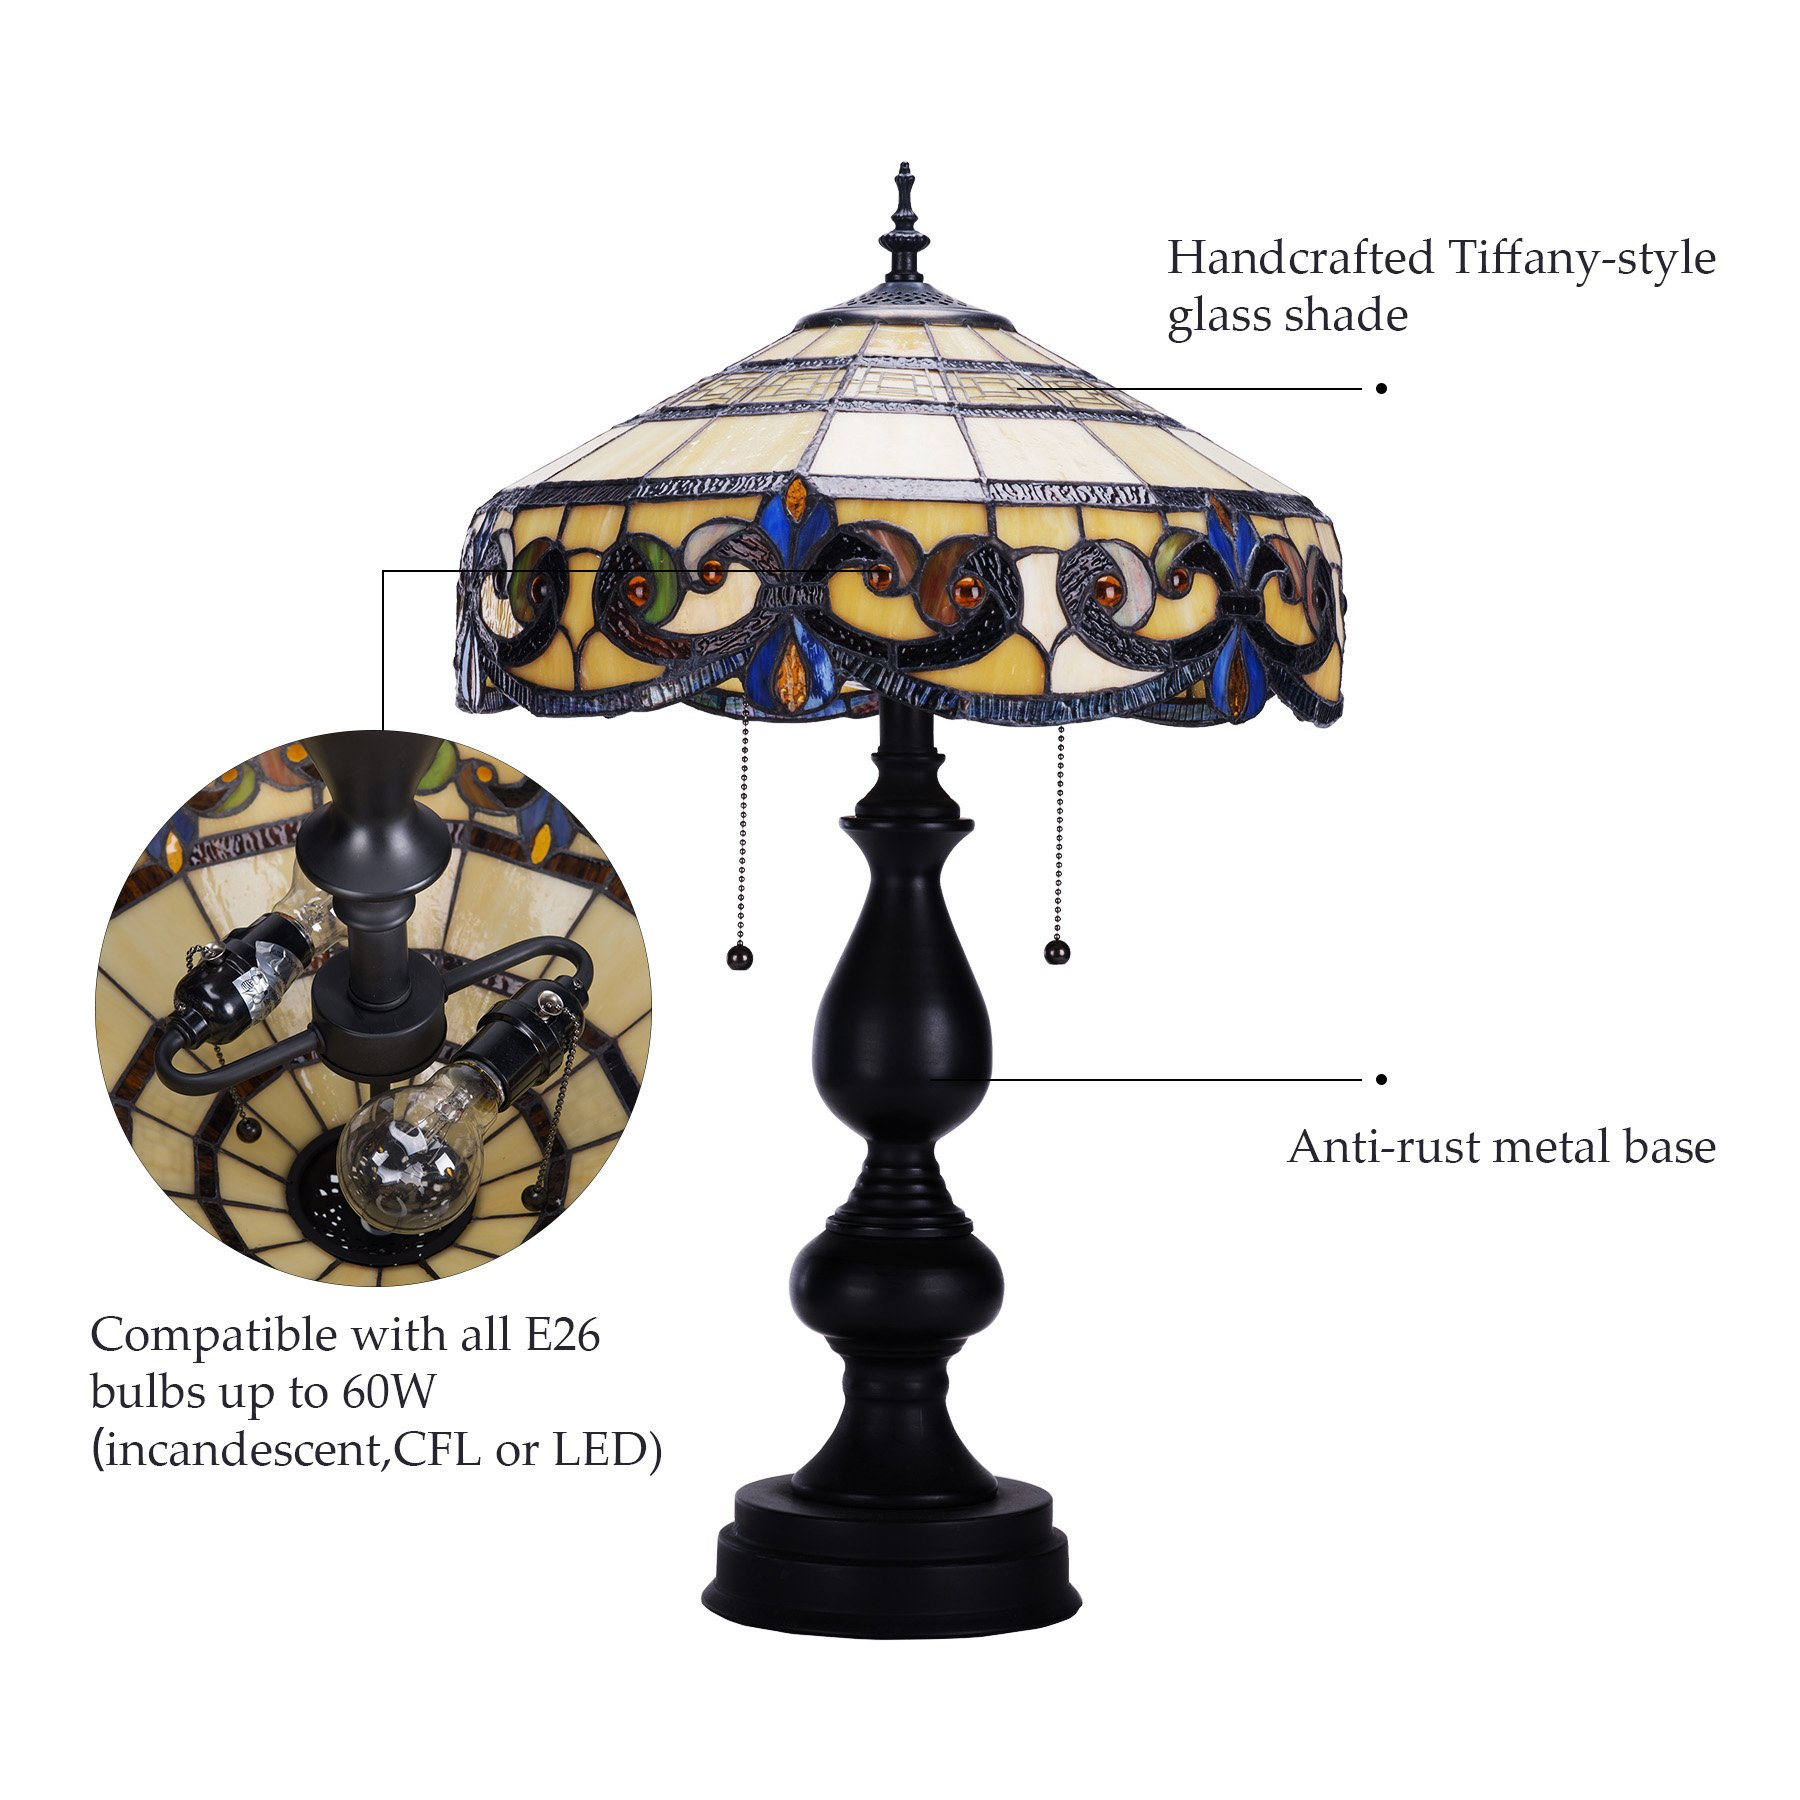 CO-Z Tiffany Style Table Lamps, 2-Light Victorian Desk Lamp with 16 Inches Stained Glass Shade, 25.5 Inches Height by CO-Z (Image #5)